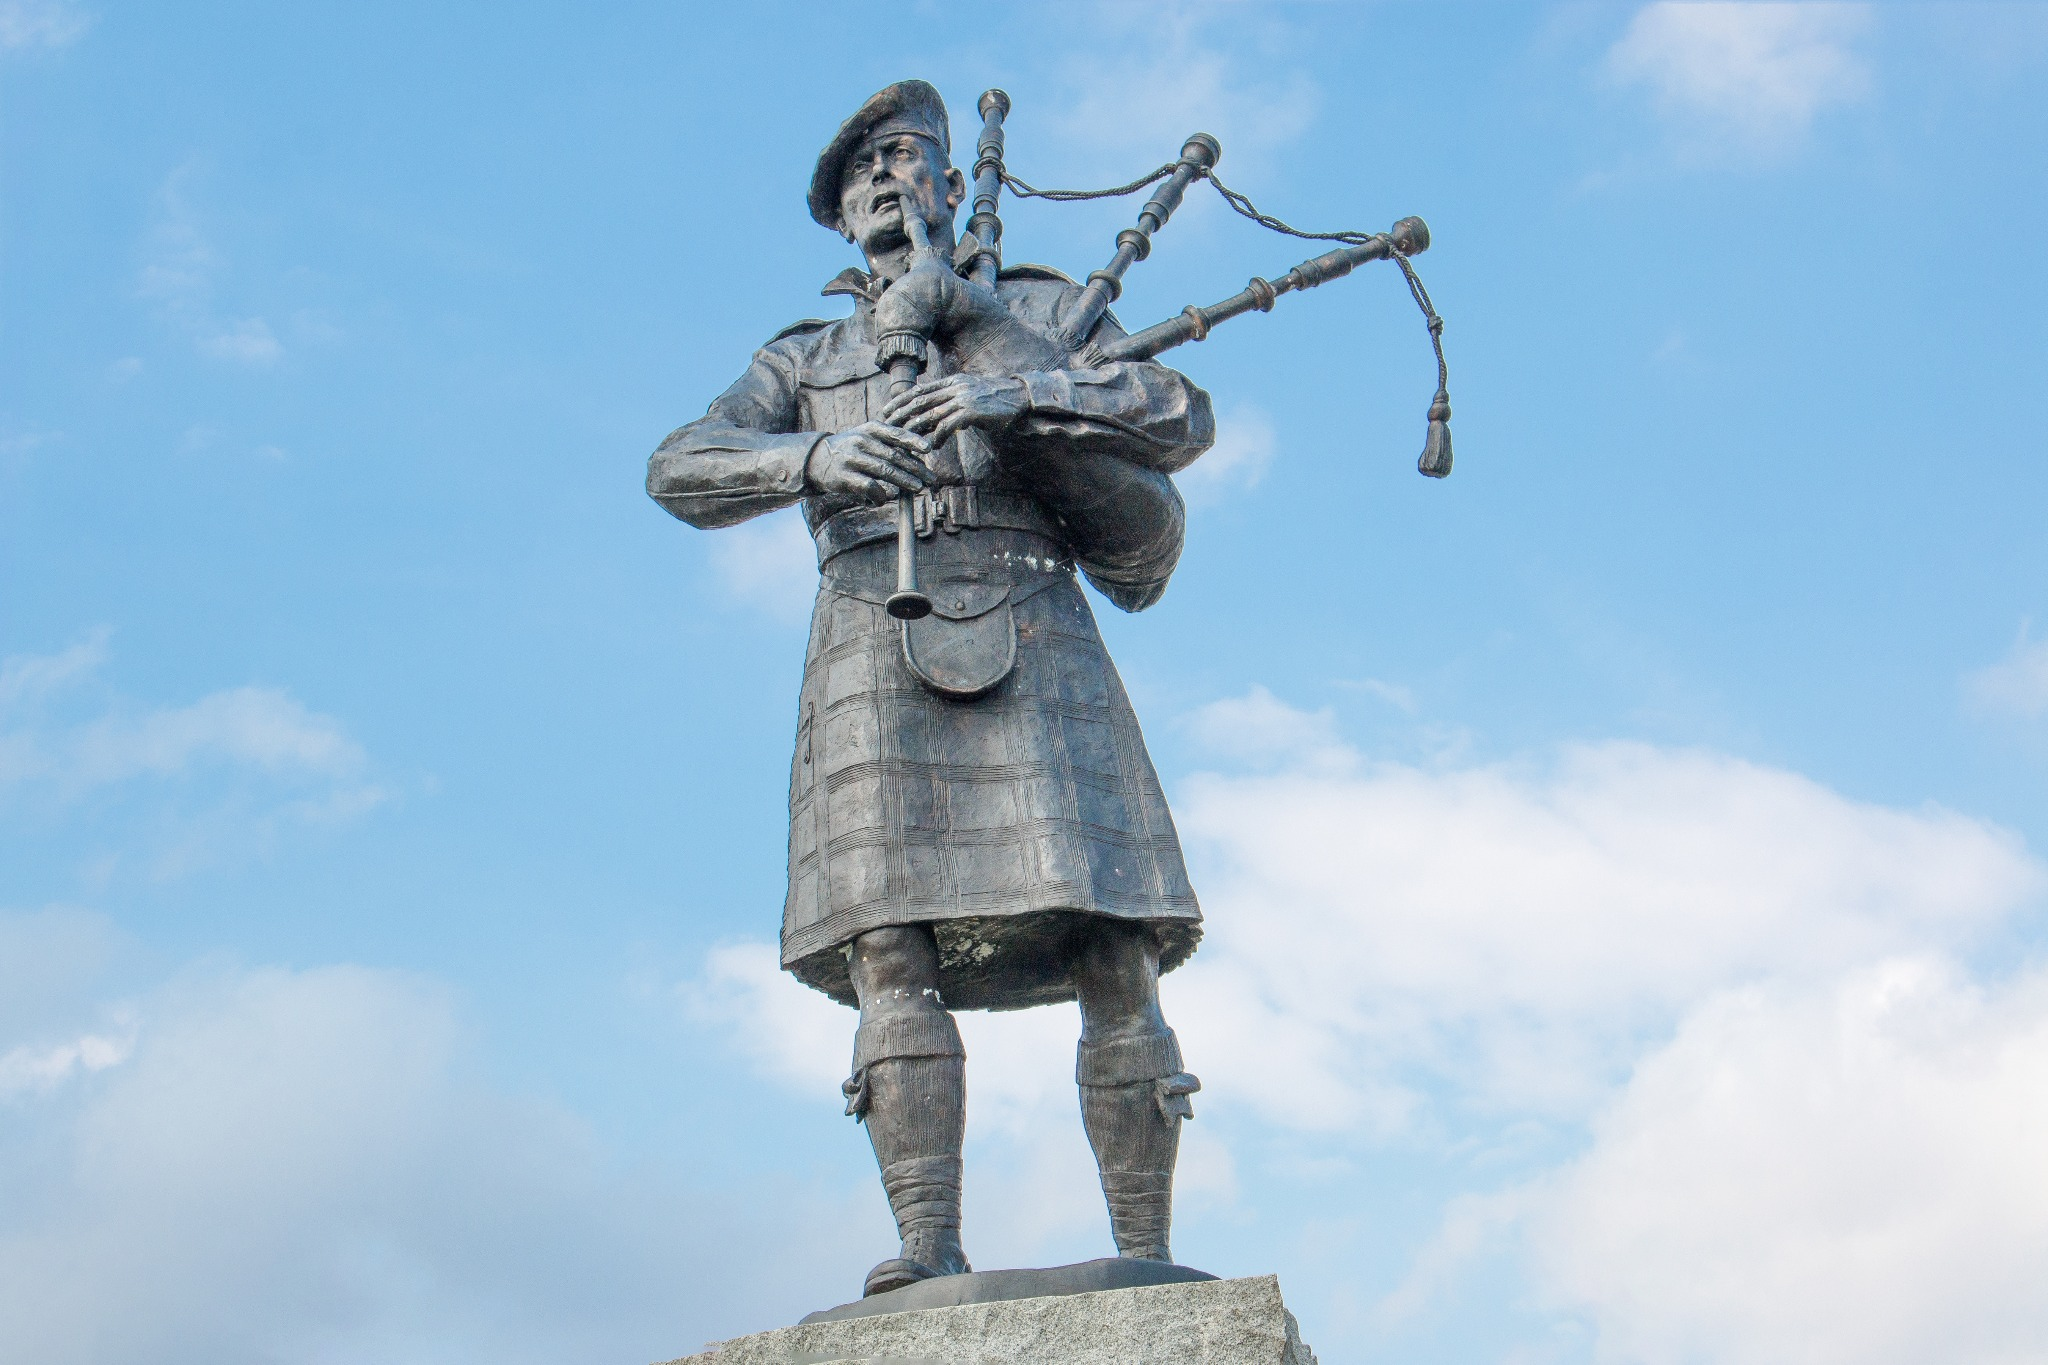 Memorial for the Highland Regiments bagpiper statue